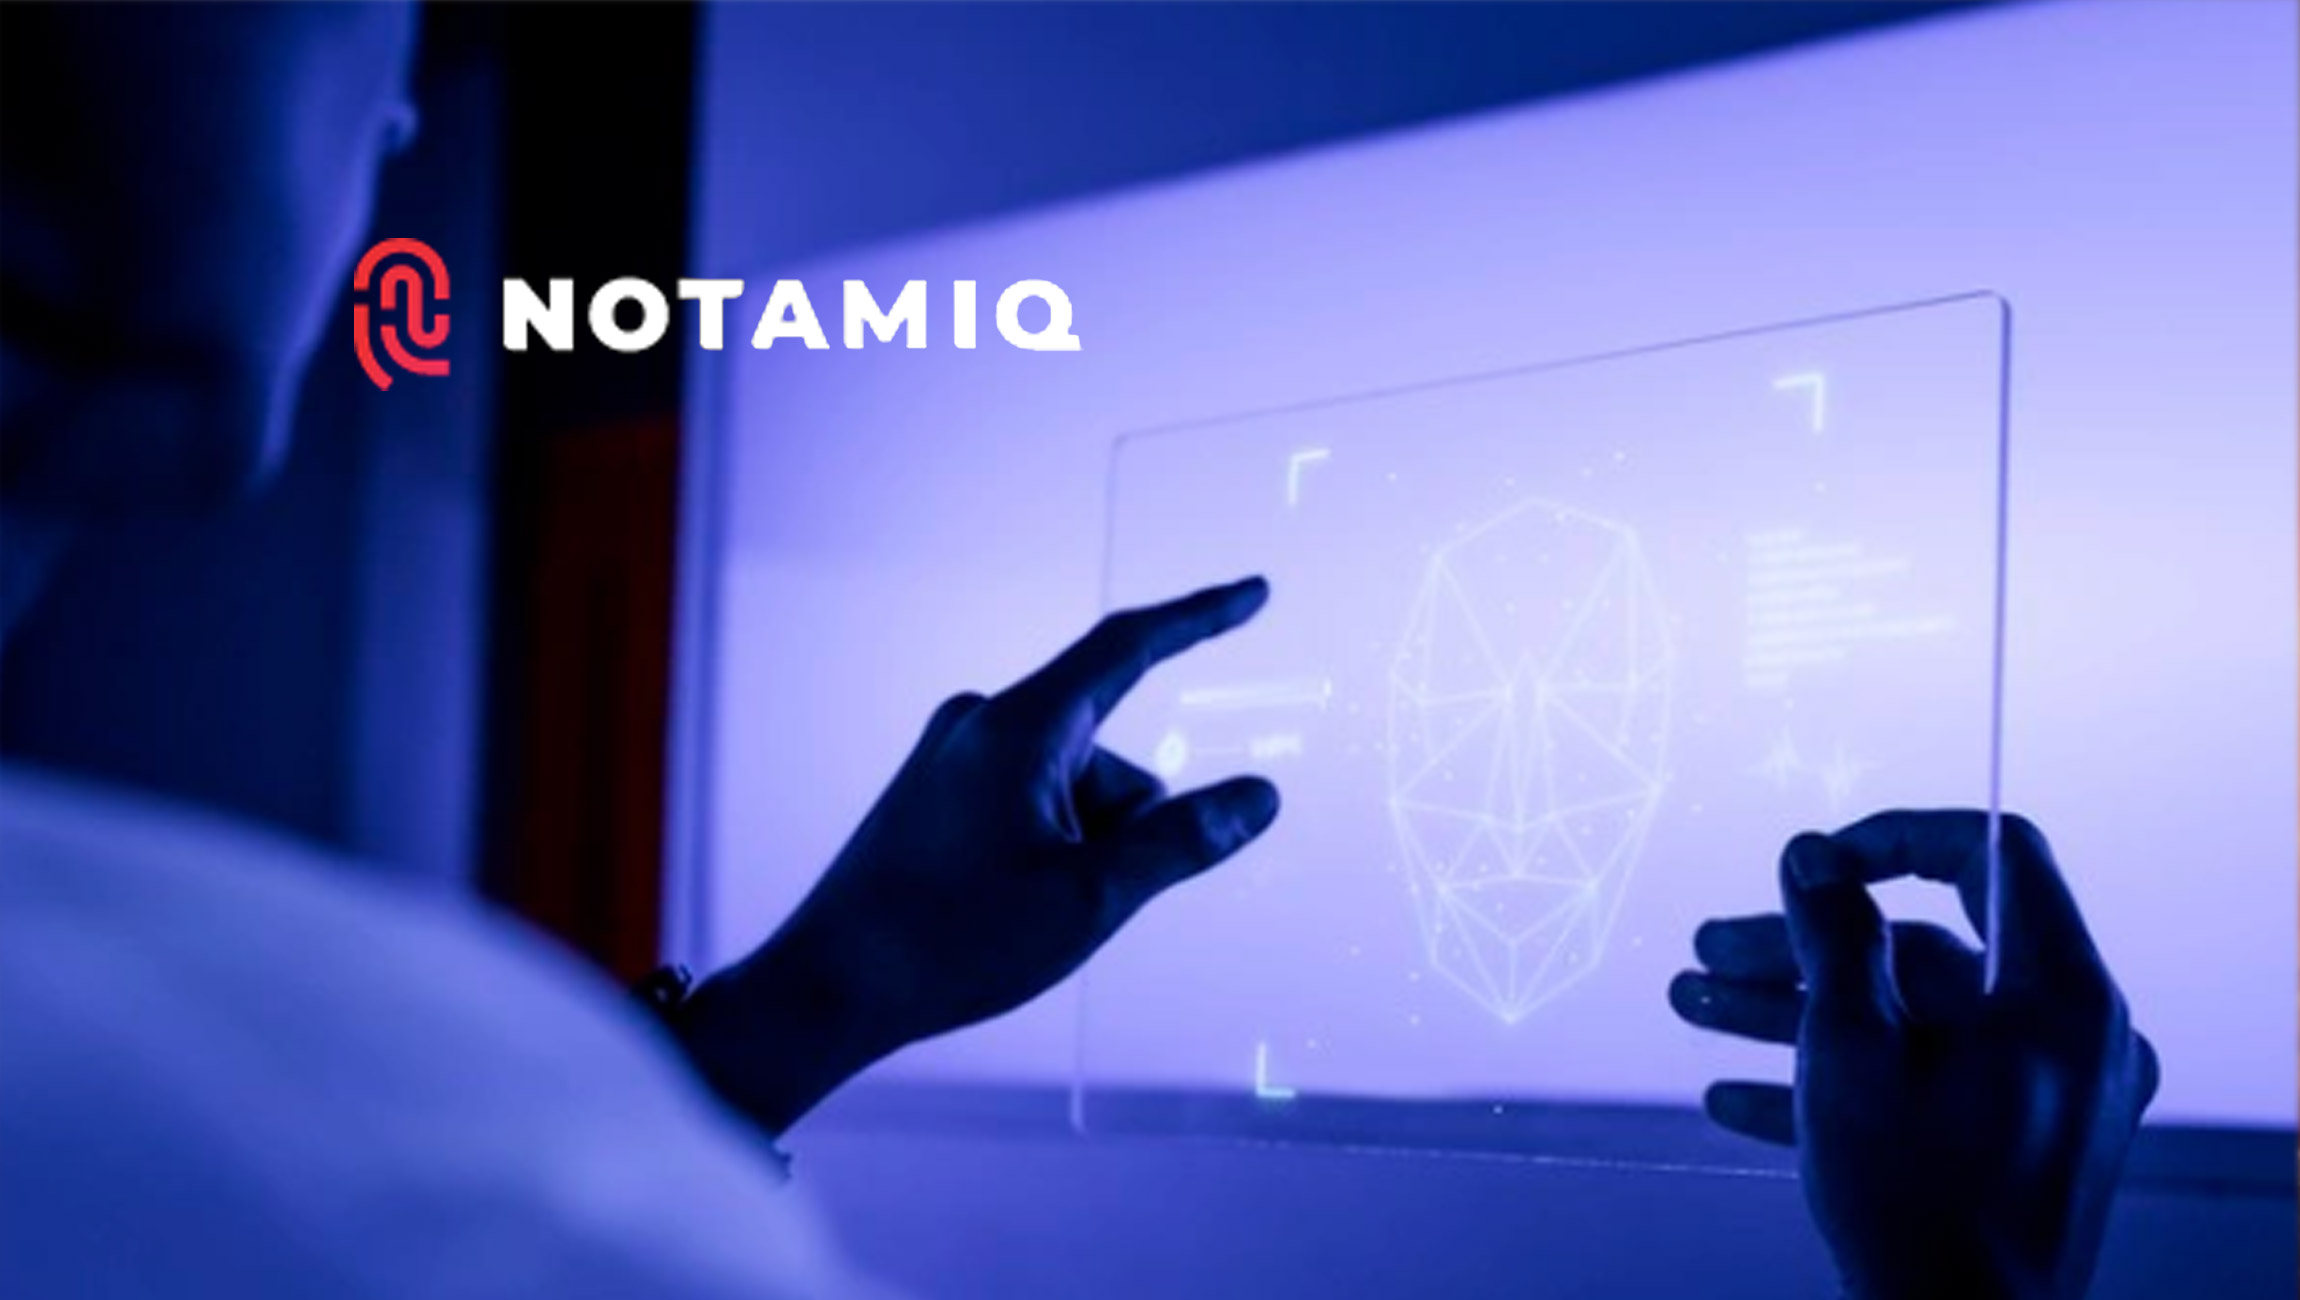 NOTAMIQ launches the first BIMI Brand Identifications Asset Management Service for Marketers